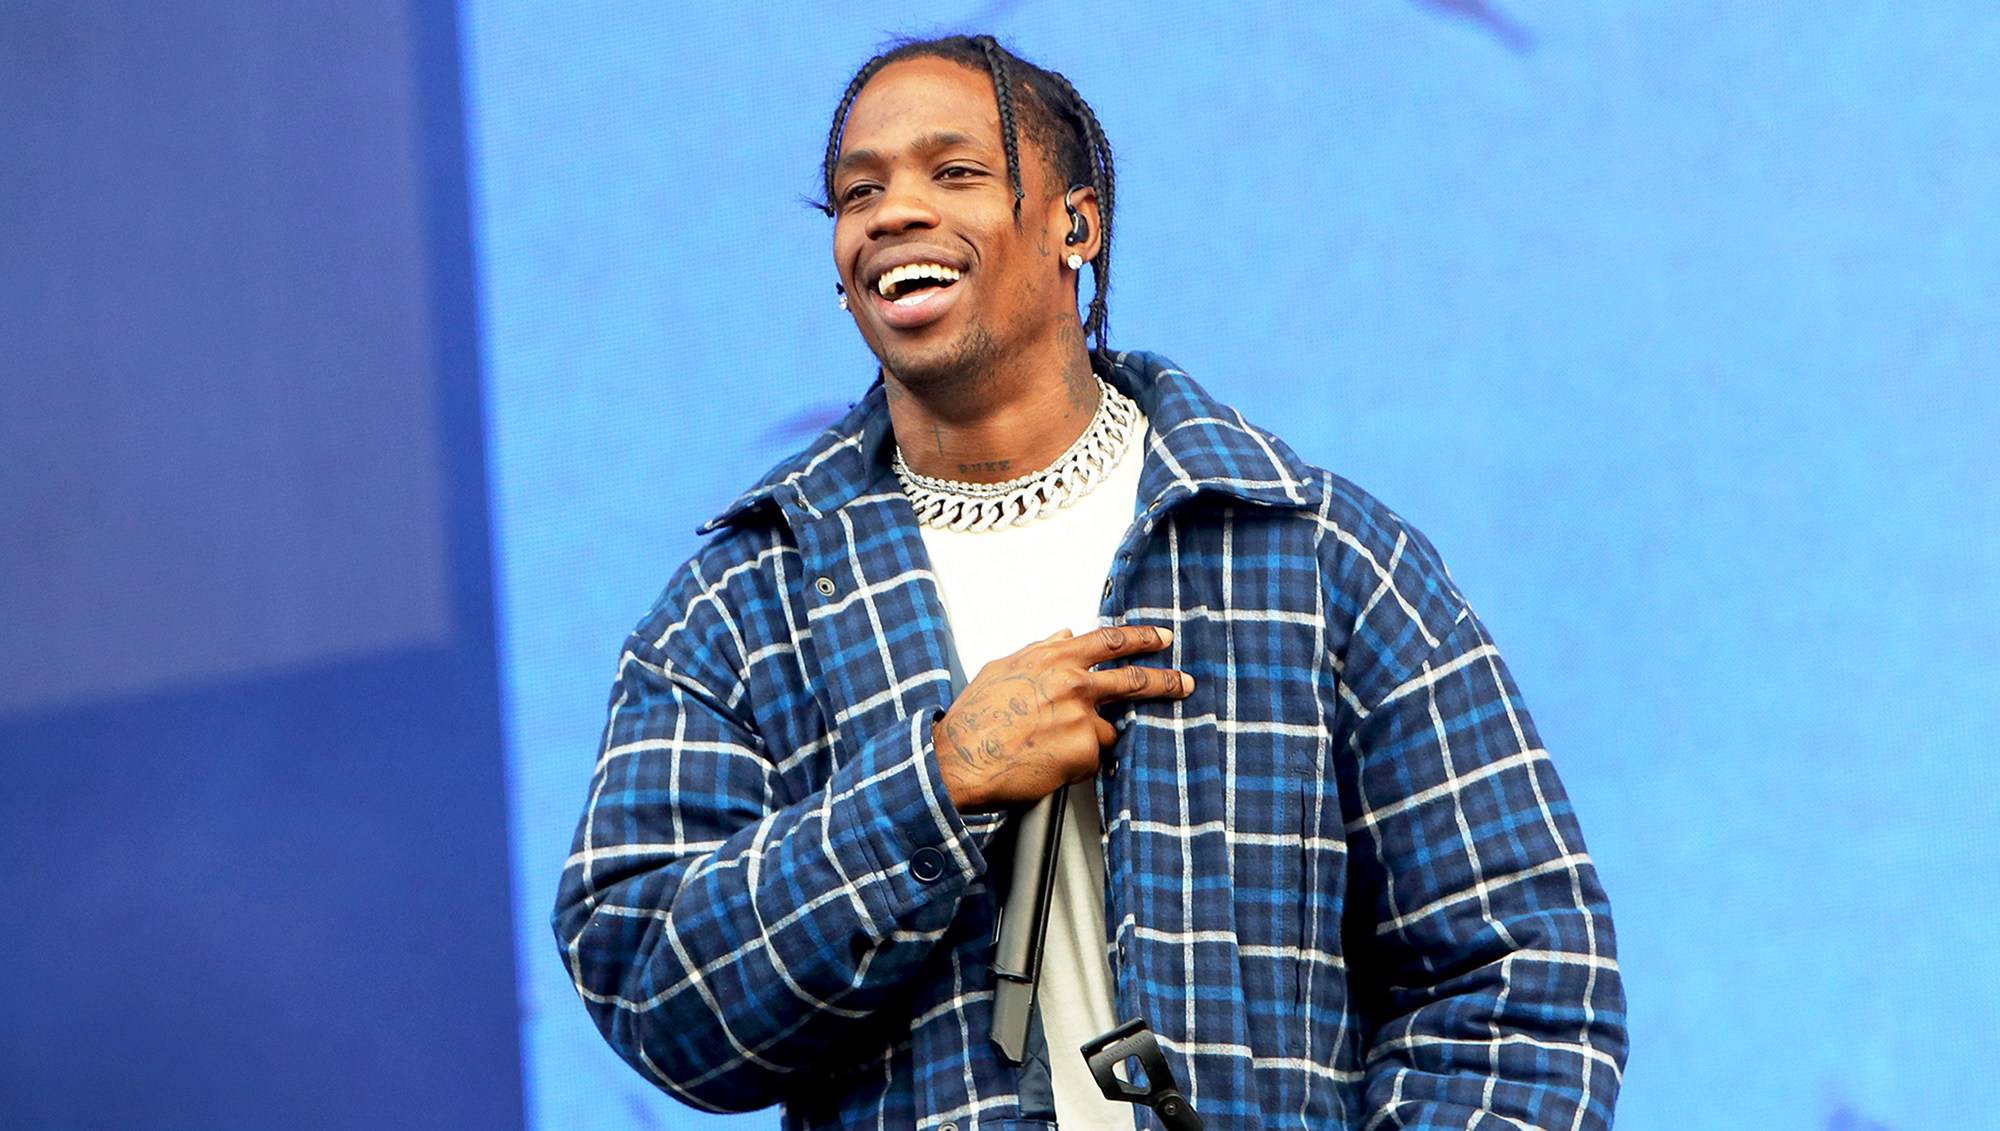 Travis Scott performs on day 2 of Wireless Festival at Finsbury Park on July 8, 2017 in London, England.